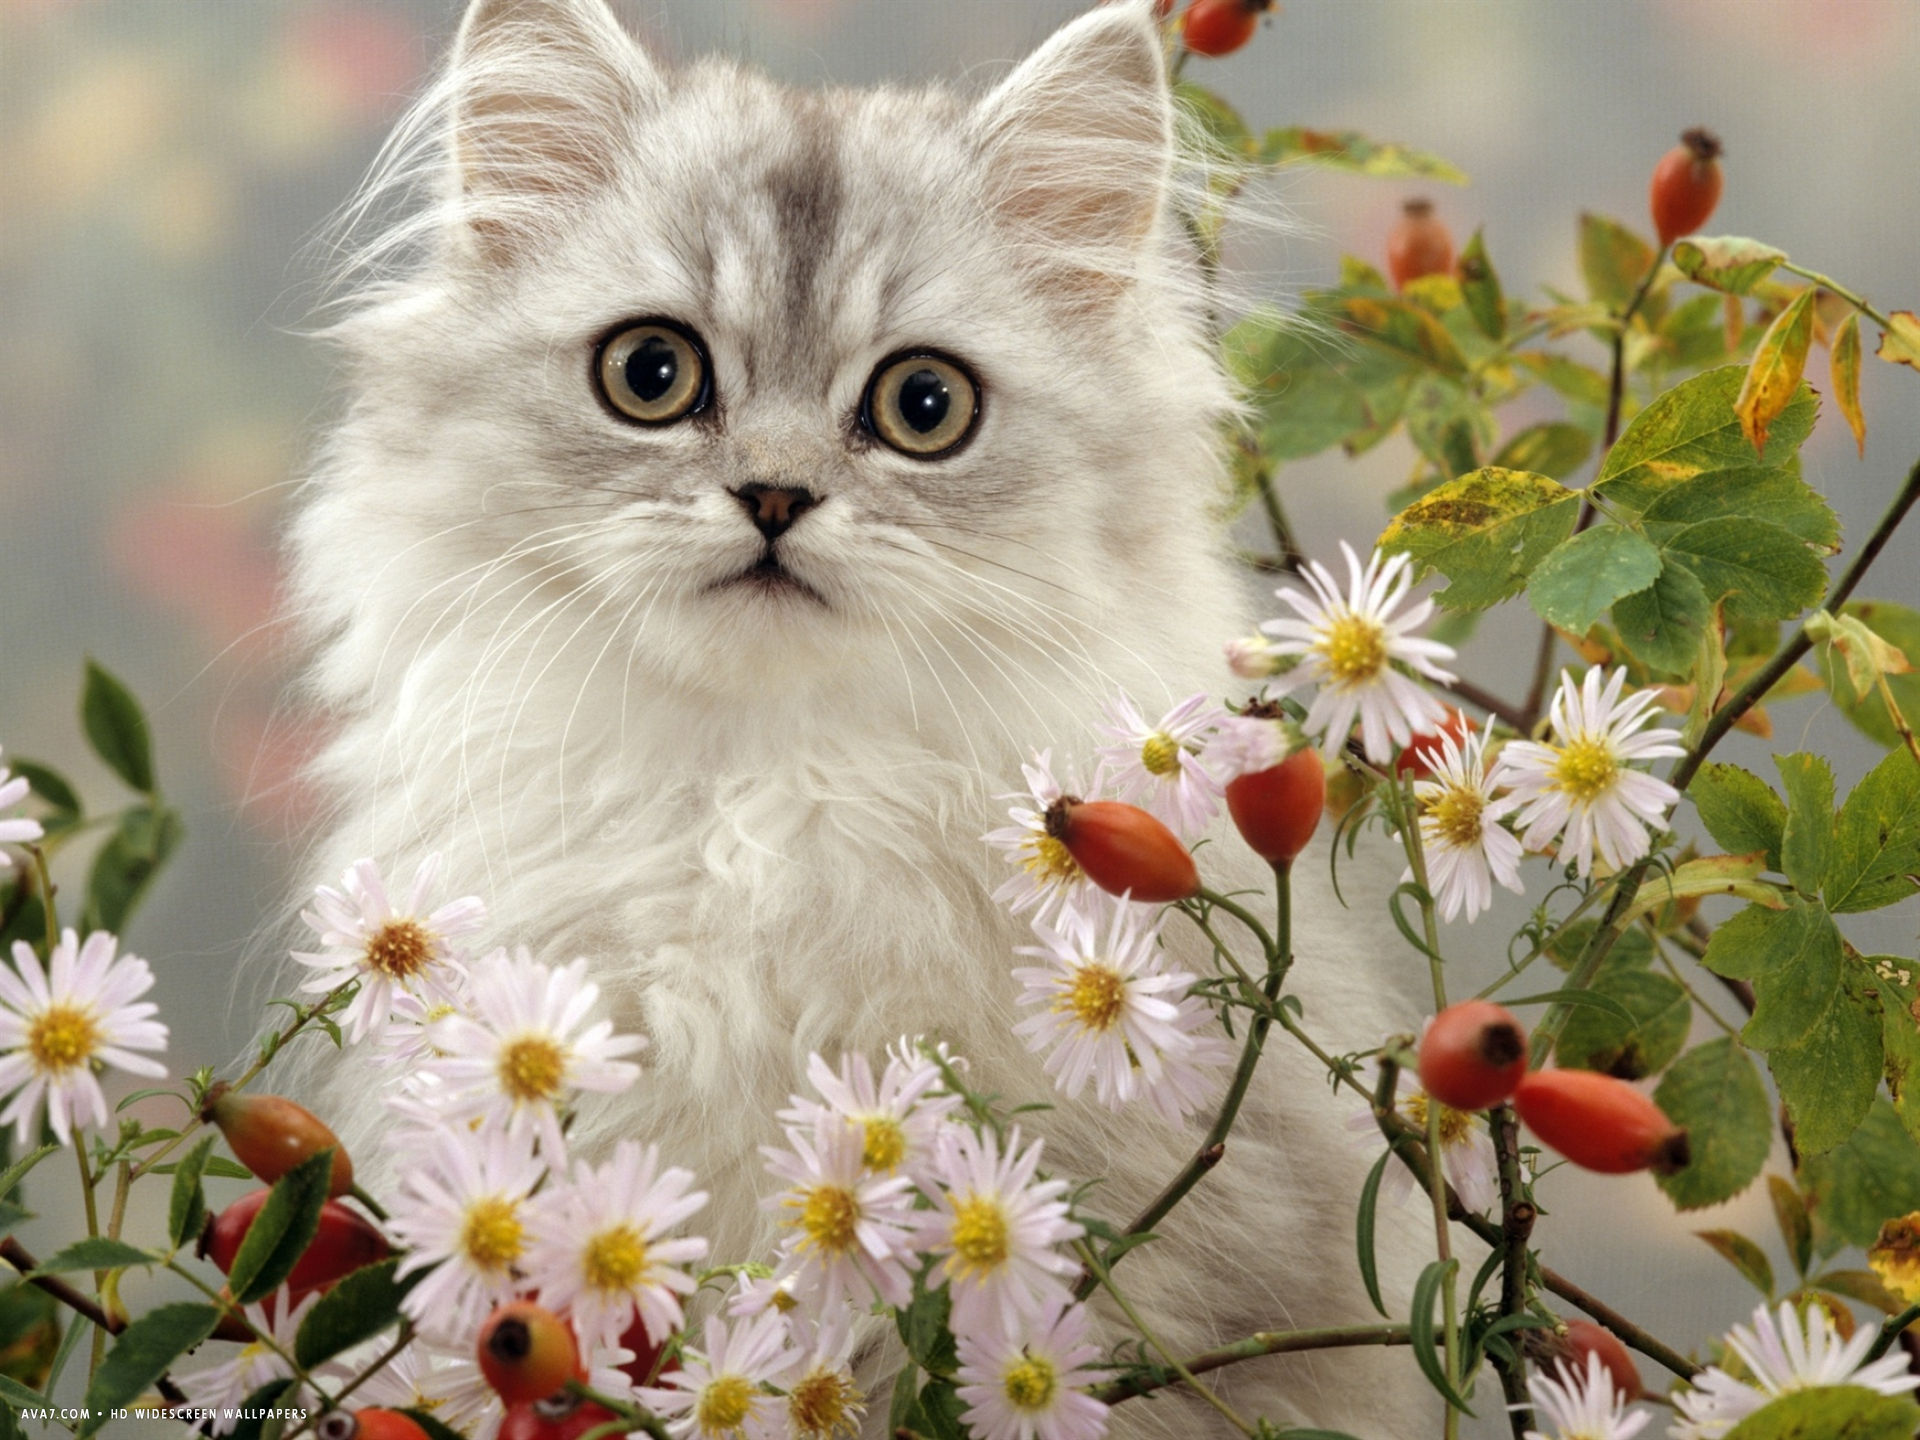 turkish van kitten among dasies and rose hip